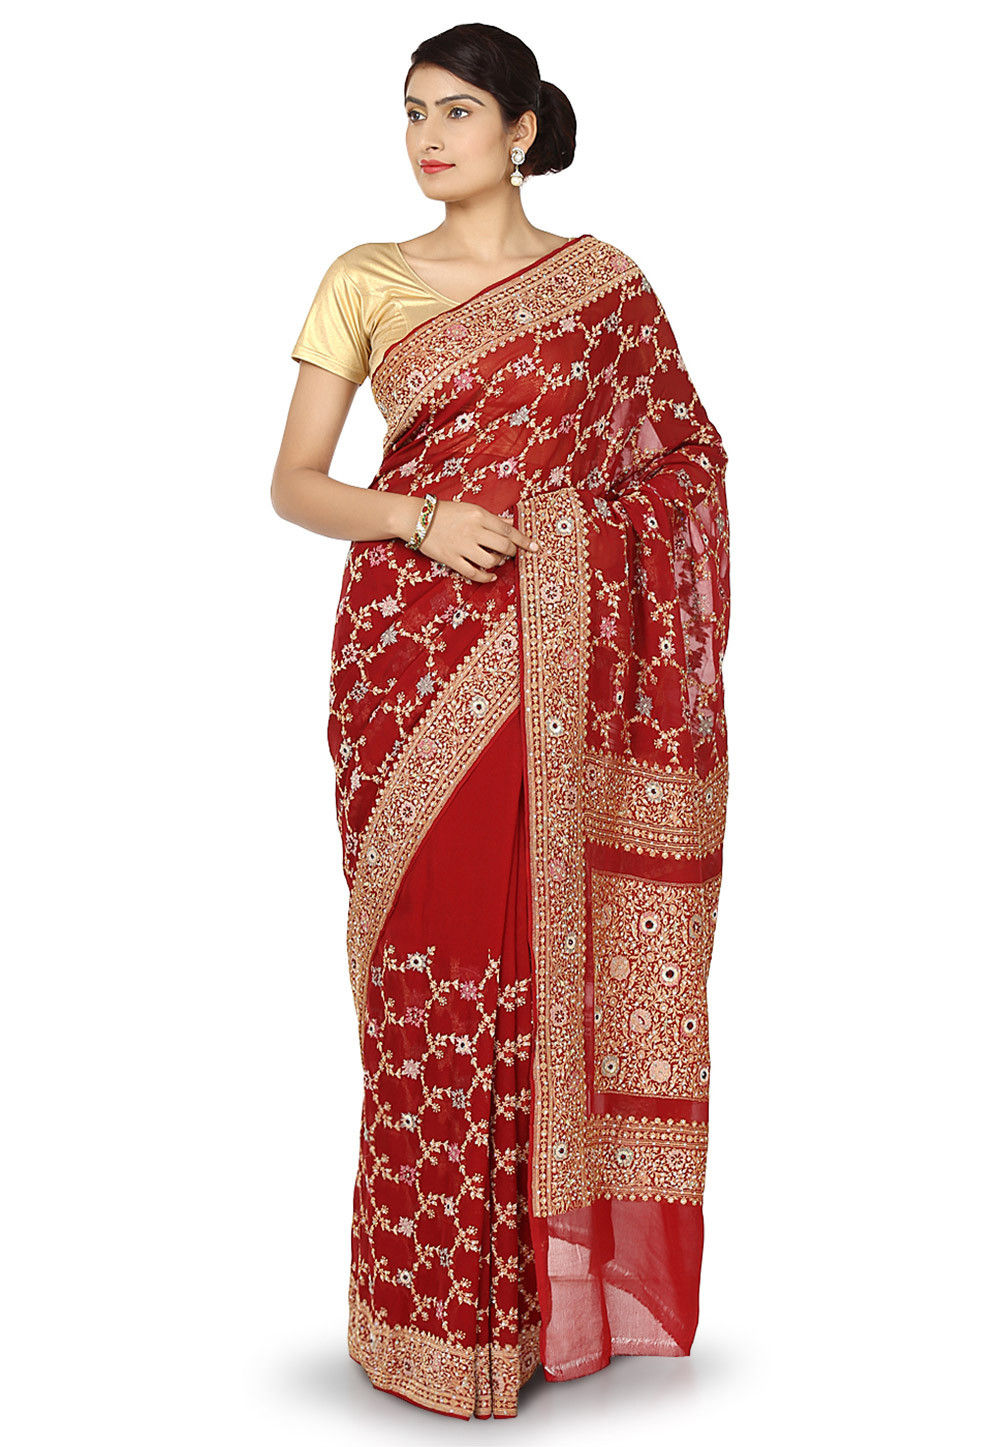 Handloom Pure Chiffon Saree in Maroon